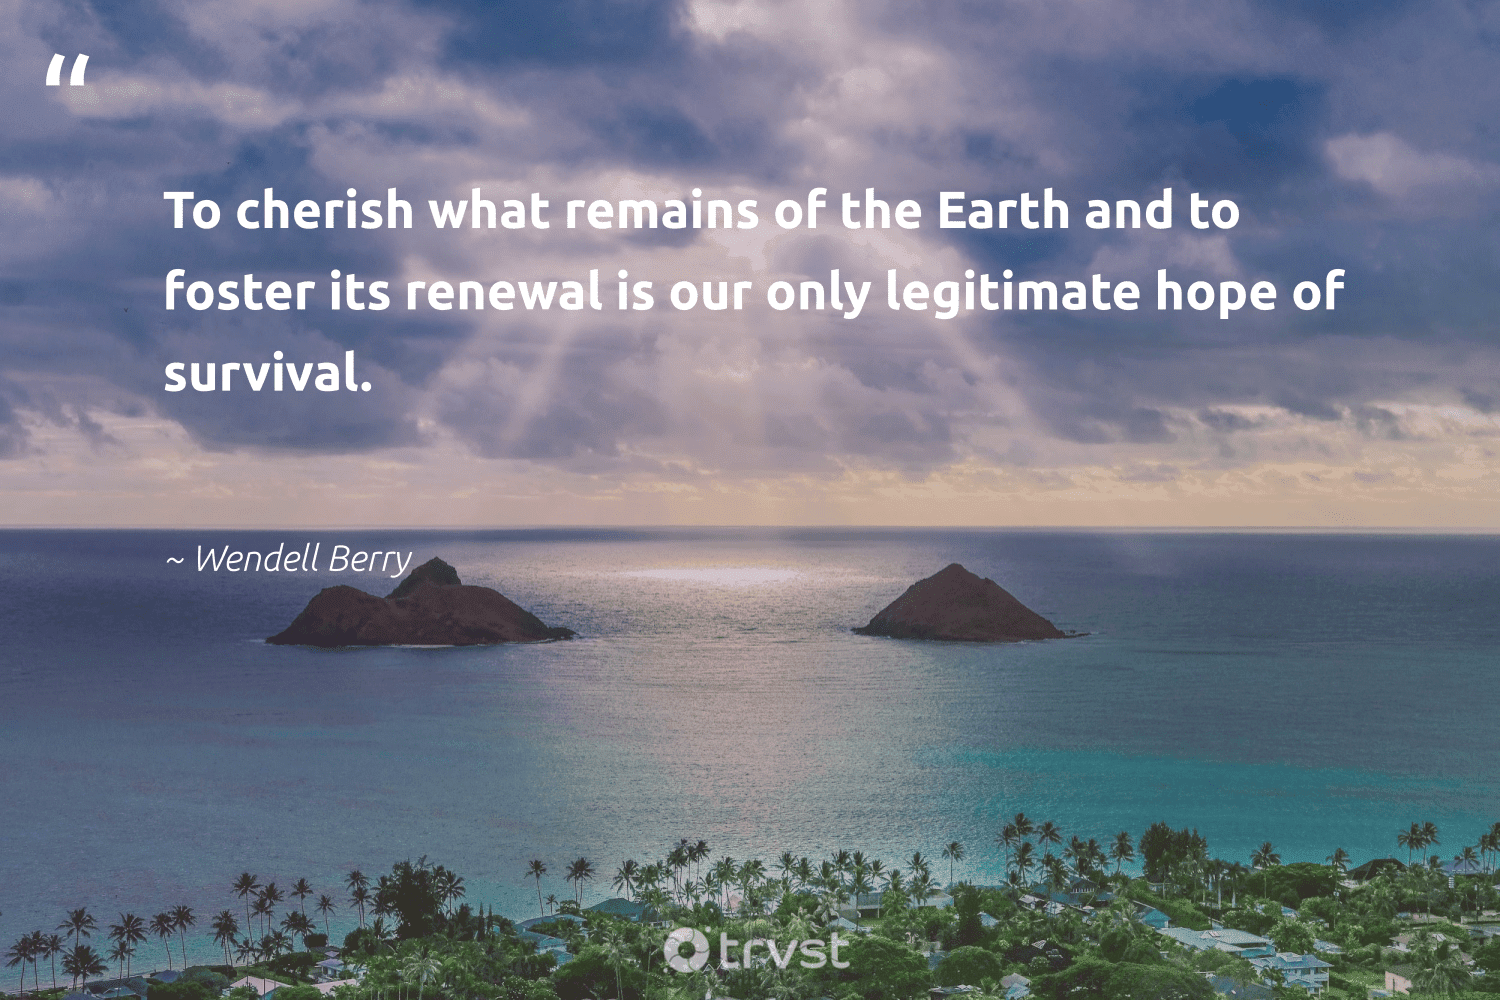 """""""To cherish what remains of the Earth and to foster its renewal is our only legitimate hope of survival.""""  - Wendell Berry #trvst #quotes #environment #earth #hope #nature #getoutside #naturelovers #collectiveaction #mothernature #noplanetb #sustainability"""